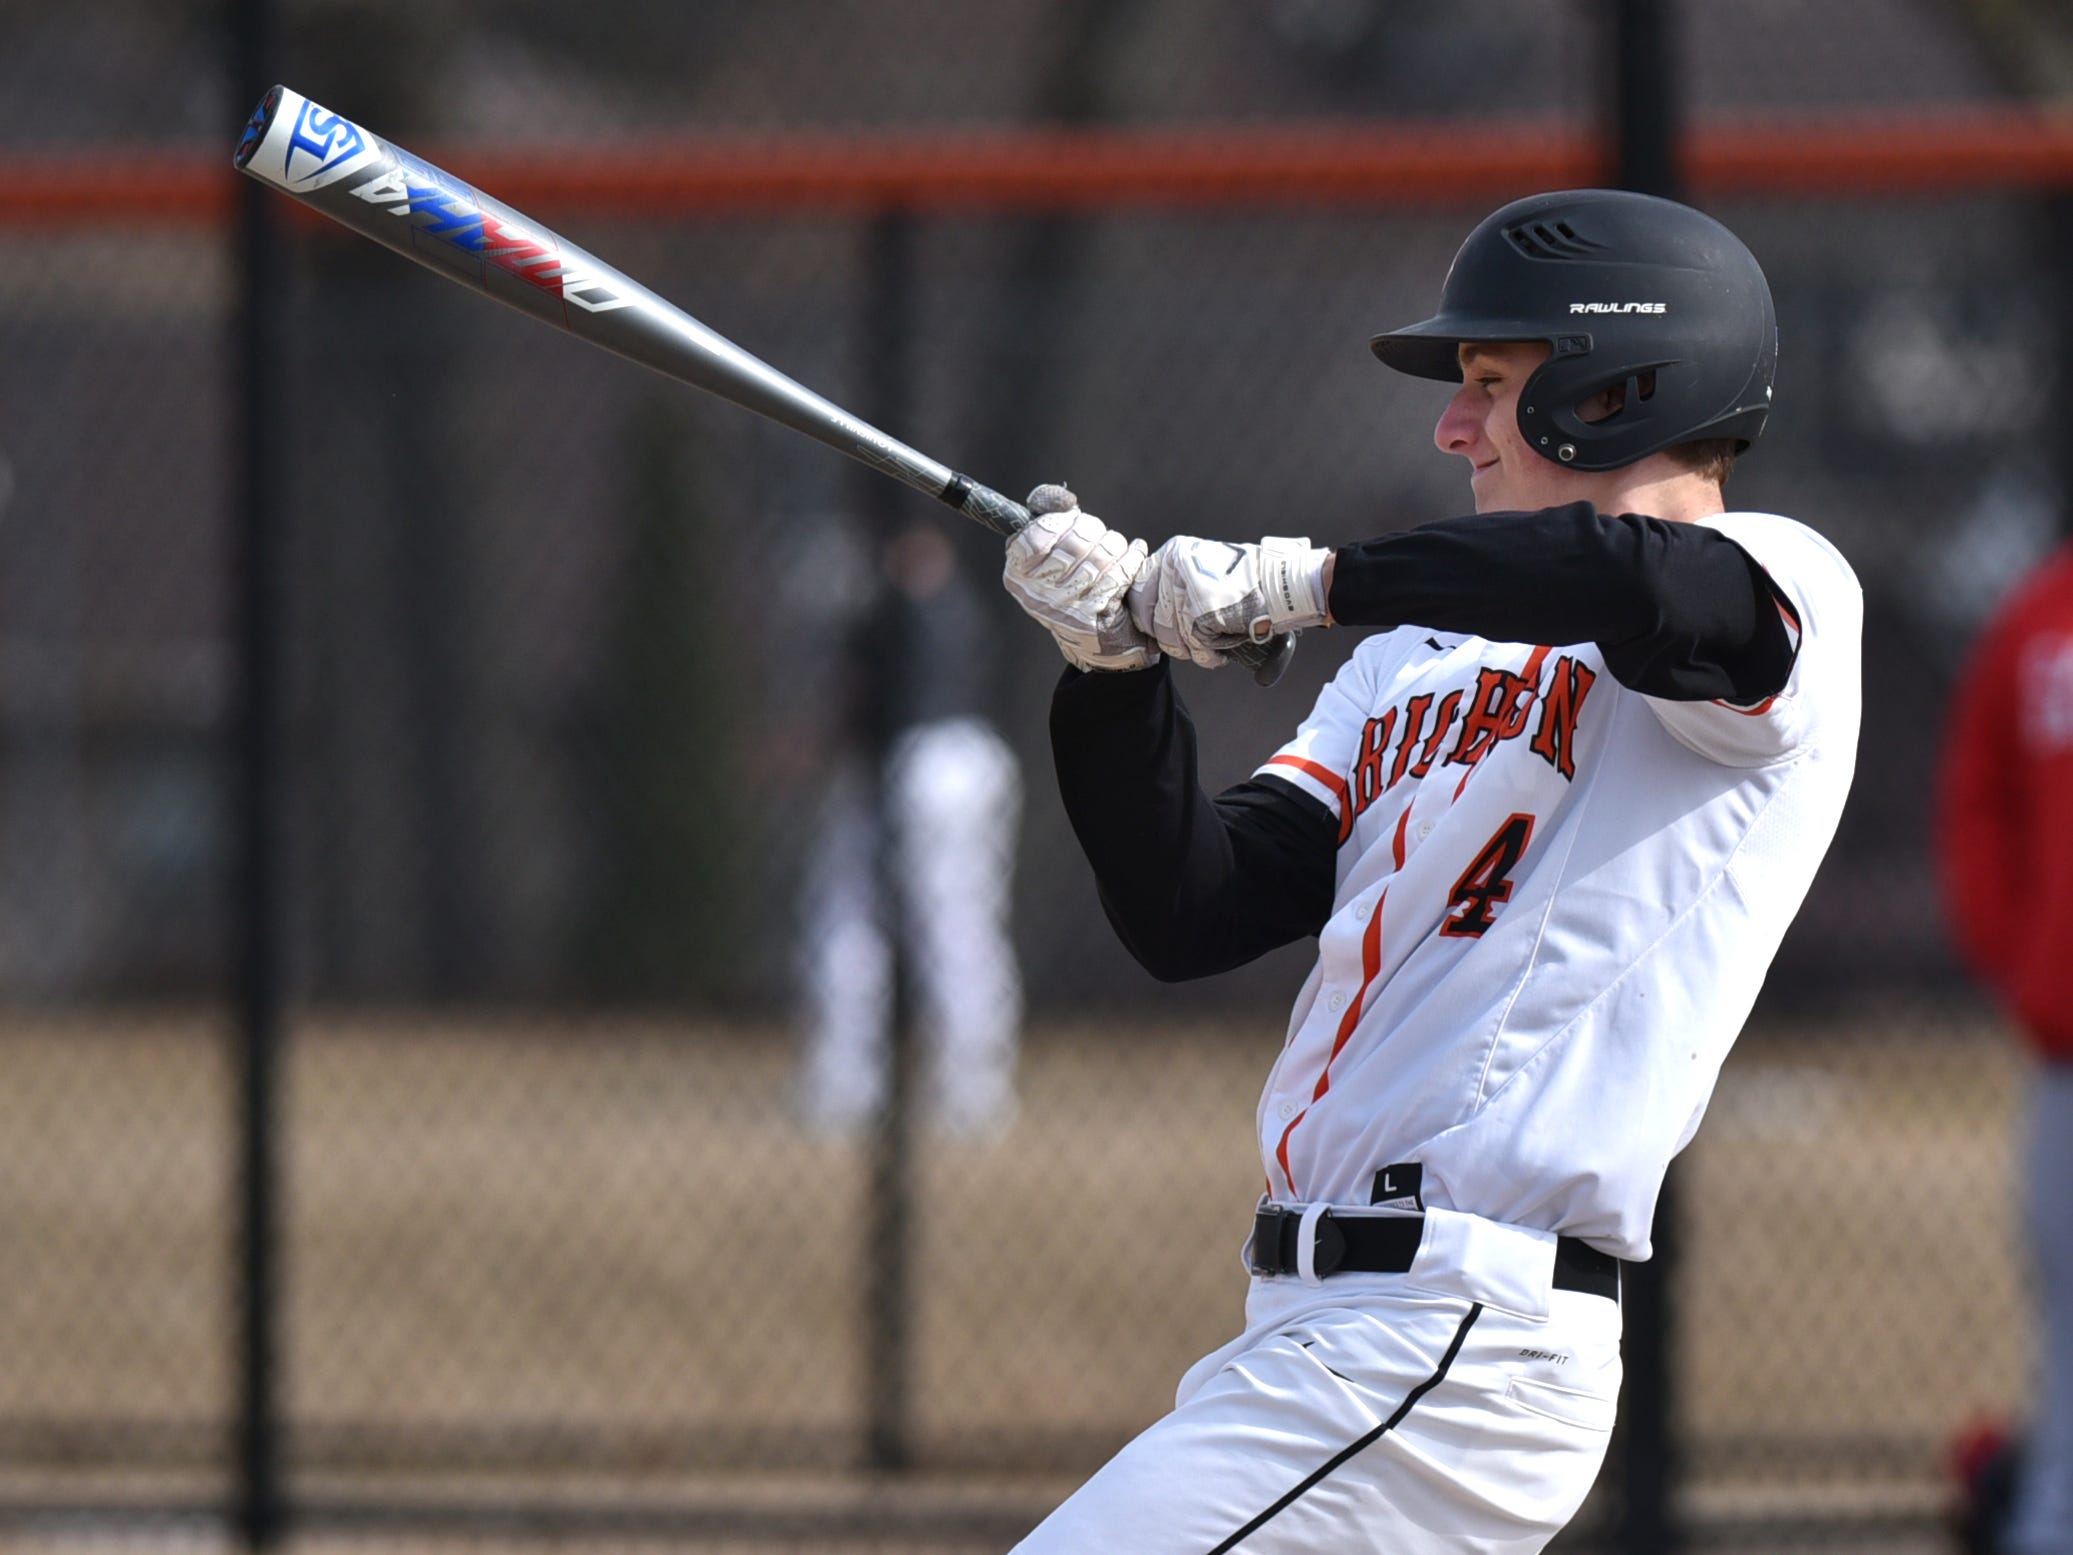 Brighton's Mitchell Marvin swings at a pitch against Canton on Tuesday, April 2, 2019.